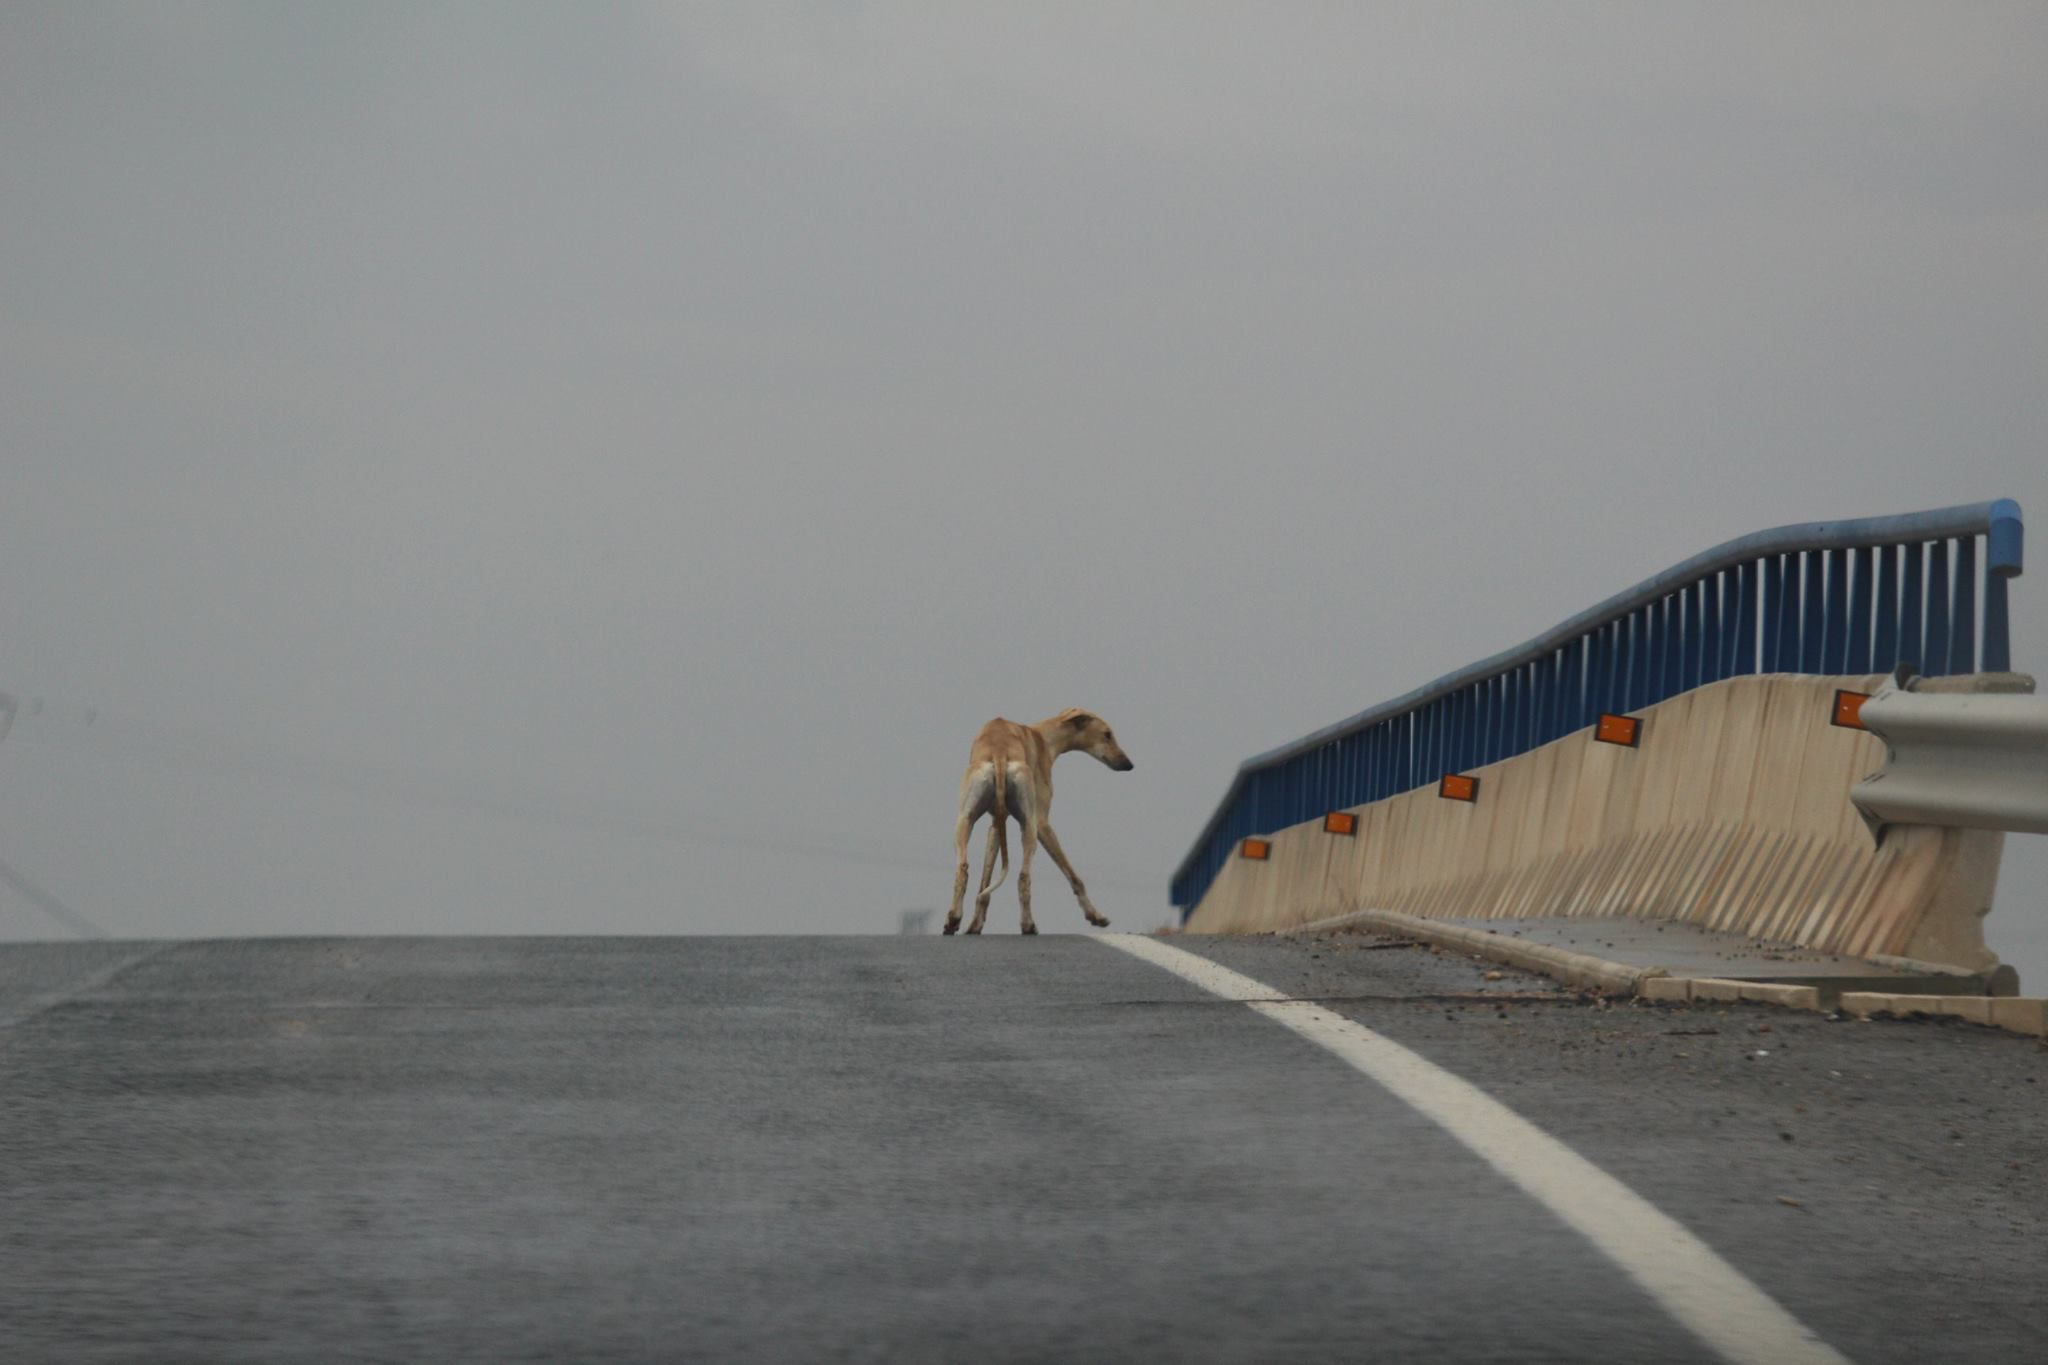 A galgo, or Spanish hunting dog, stands in the road